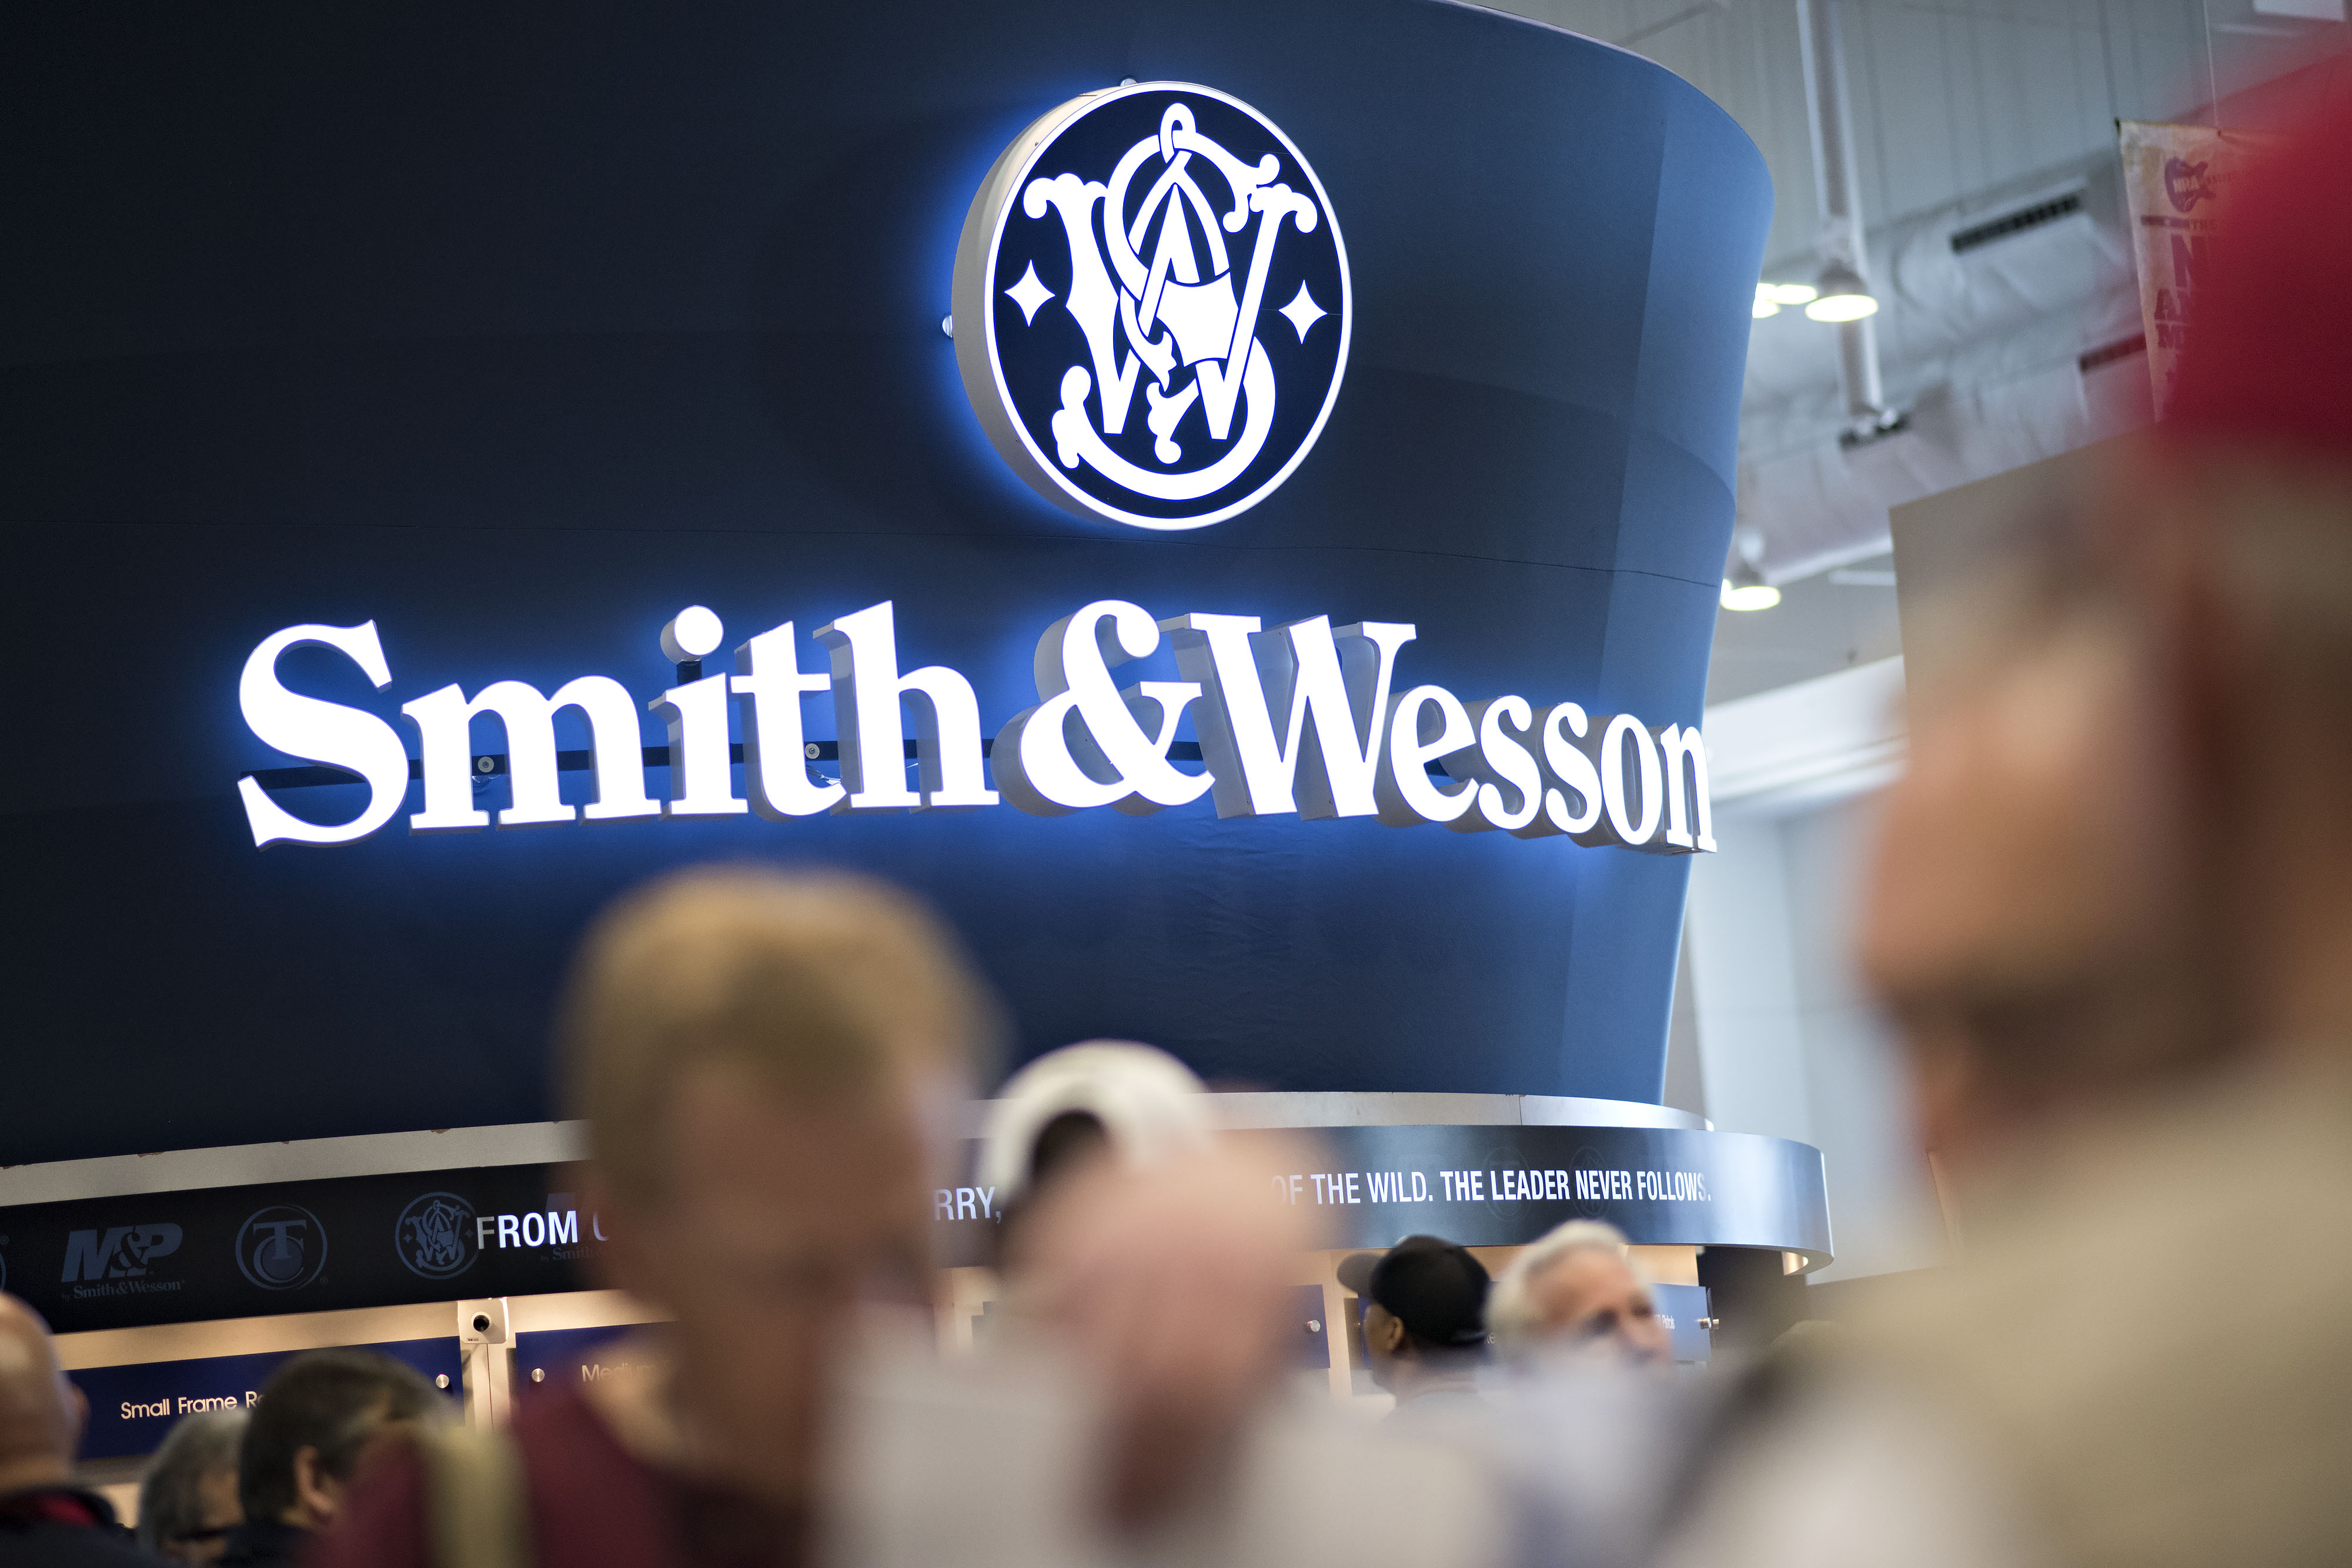 Attendees look over hand guns in the Smith & Wesson booth on the exhibition floor of the 144th National Rifle Association (NRA) Annual Meetings and Exhibits at the Music City Center in Nashville, Tennessee, U.S., on Saturday, April 11, 2015. Top Republican contenders for their party's 2016 presidential nomination are lining up to speak at the annual NRA event, except New Jersey Governor Chris Christie and Kentucky Senator Rand Paul, who were snubbed by the country's largest and most powerful gun lobby. Photographer: Daniel Acker/Bloomberg via Getty Images